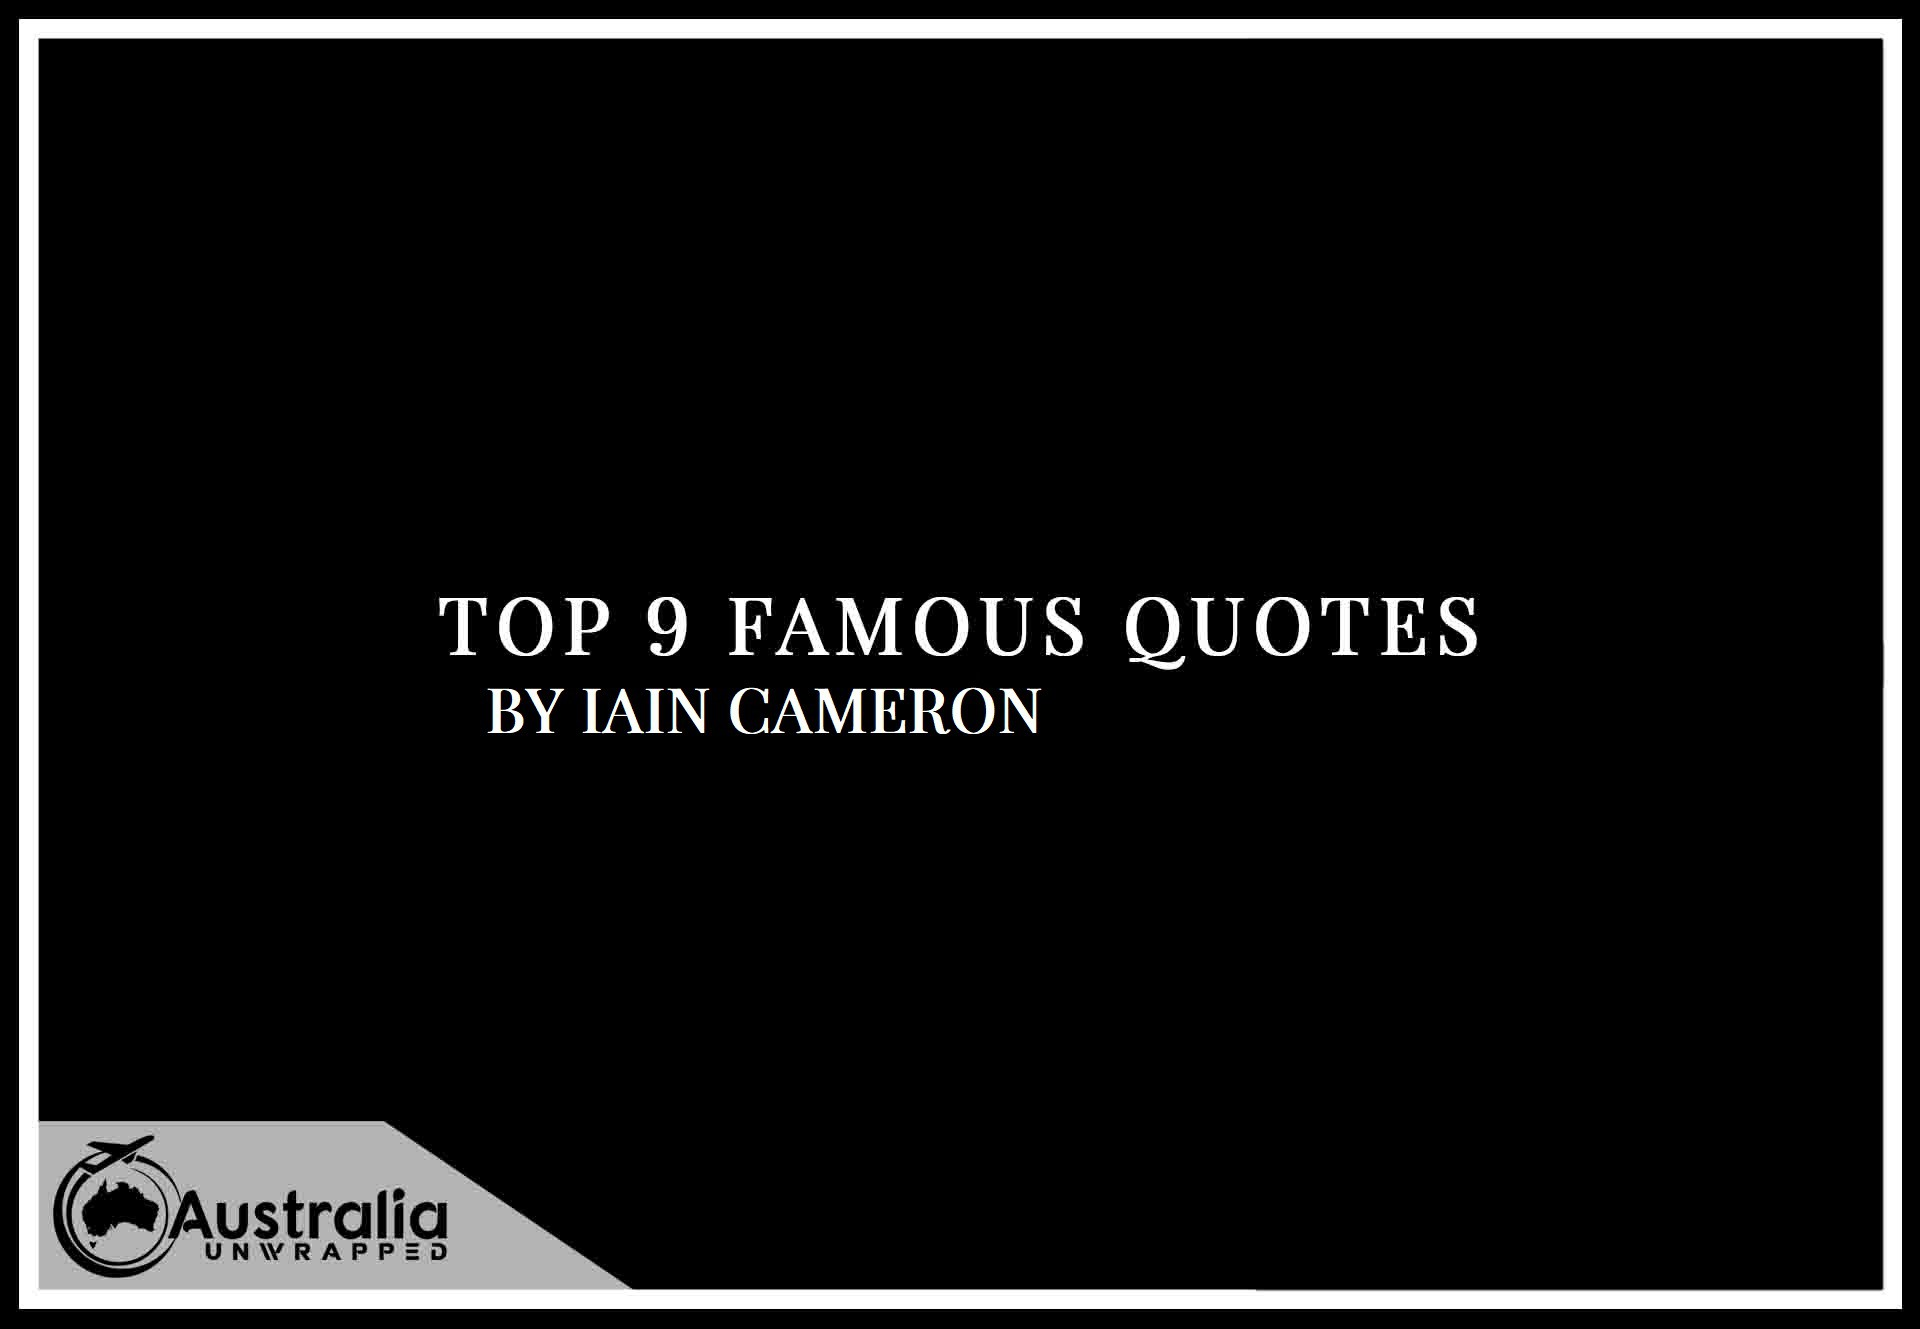 Top 9 Famous Quotes by Author Iain Cameron Williams